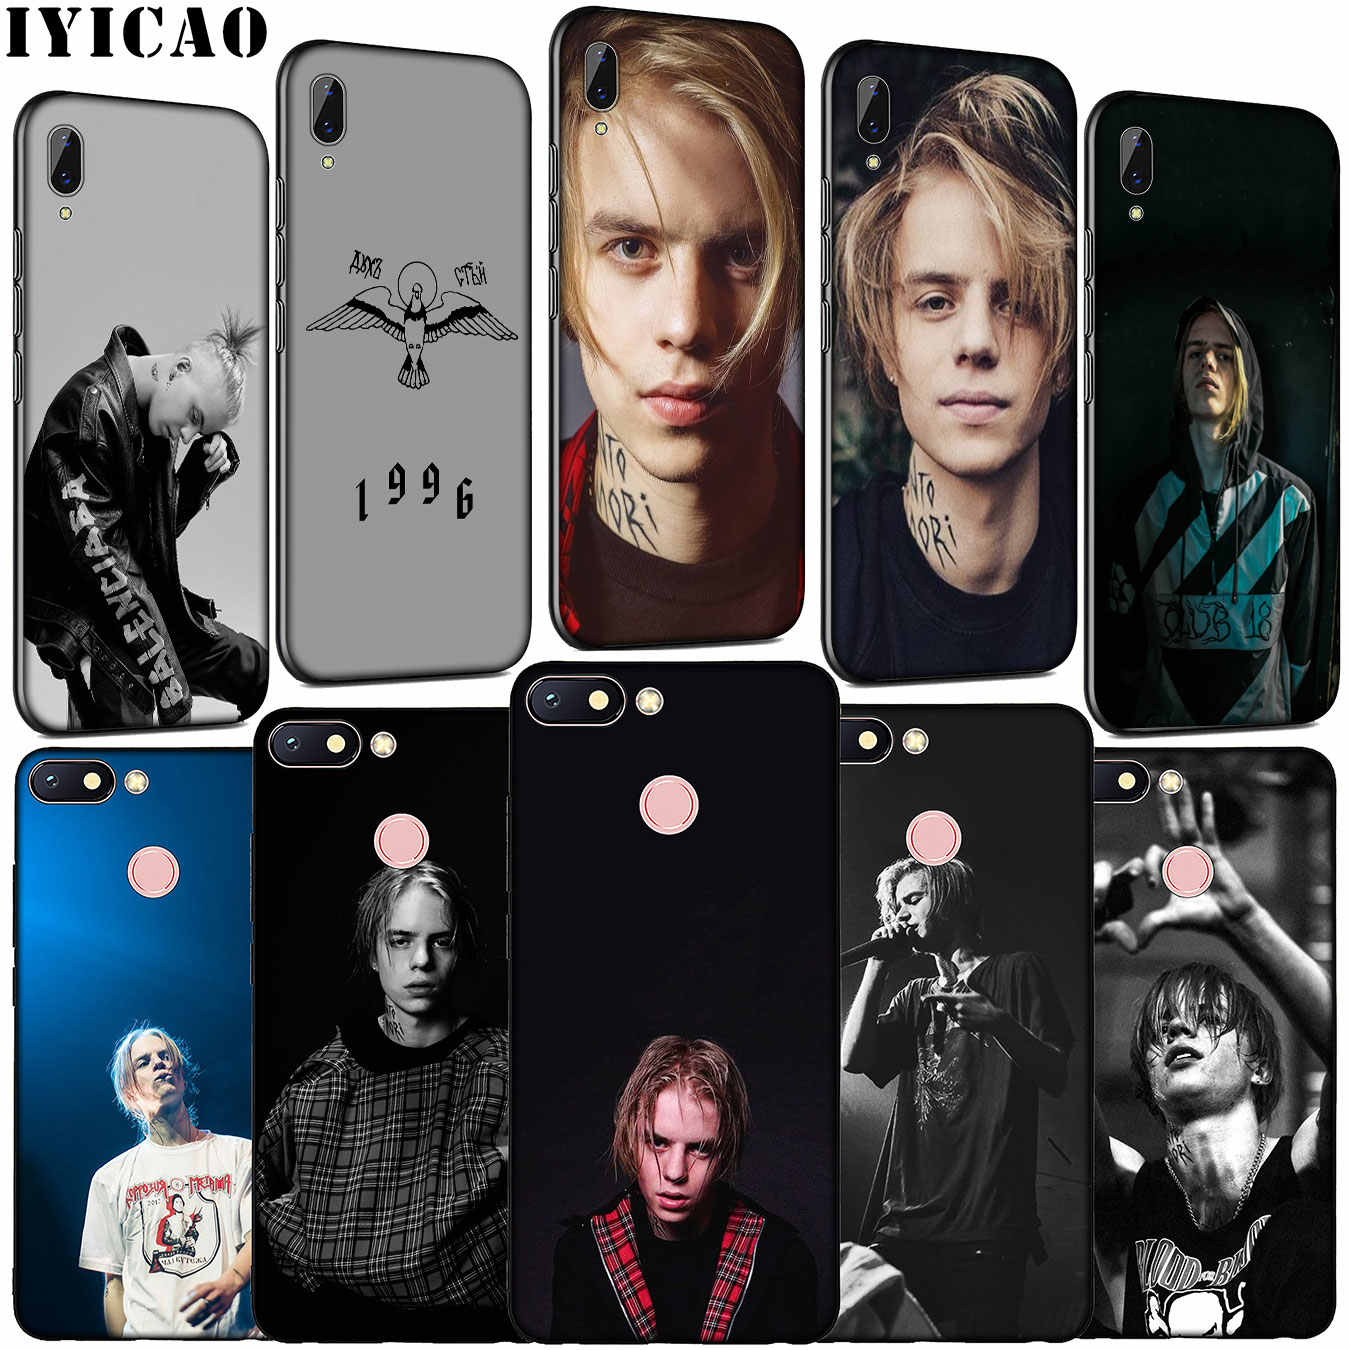 IYICAO Russia rapper Pharaoh Hot singer Soft Silicone Phone Case for Xiaomi Redmi K20 GO 8A 7A 6A 5A 4A 4X Note 8 7 6 Pro 5 Plus